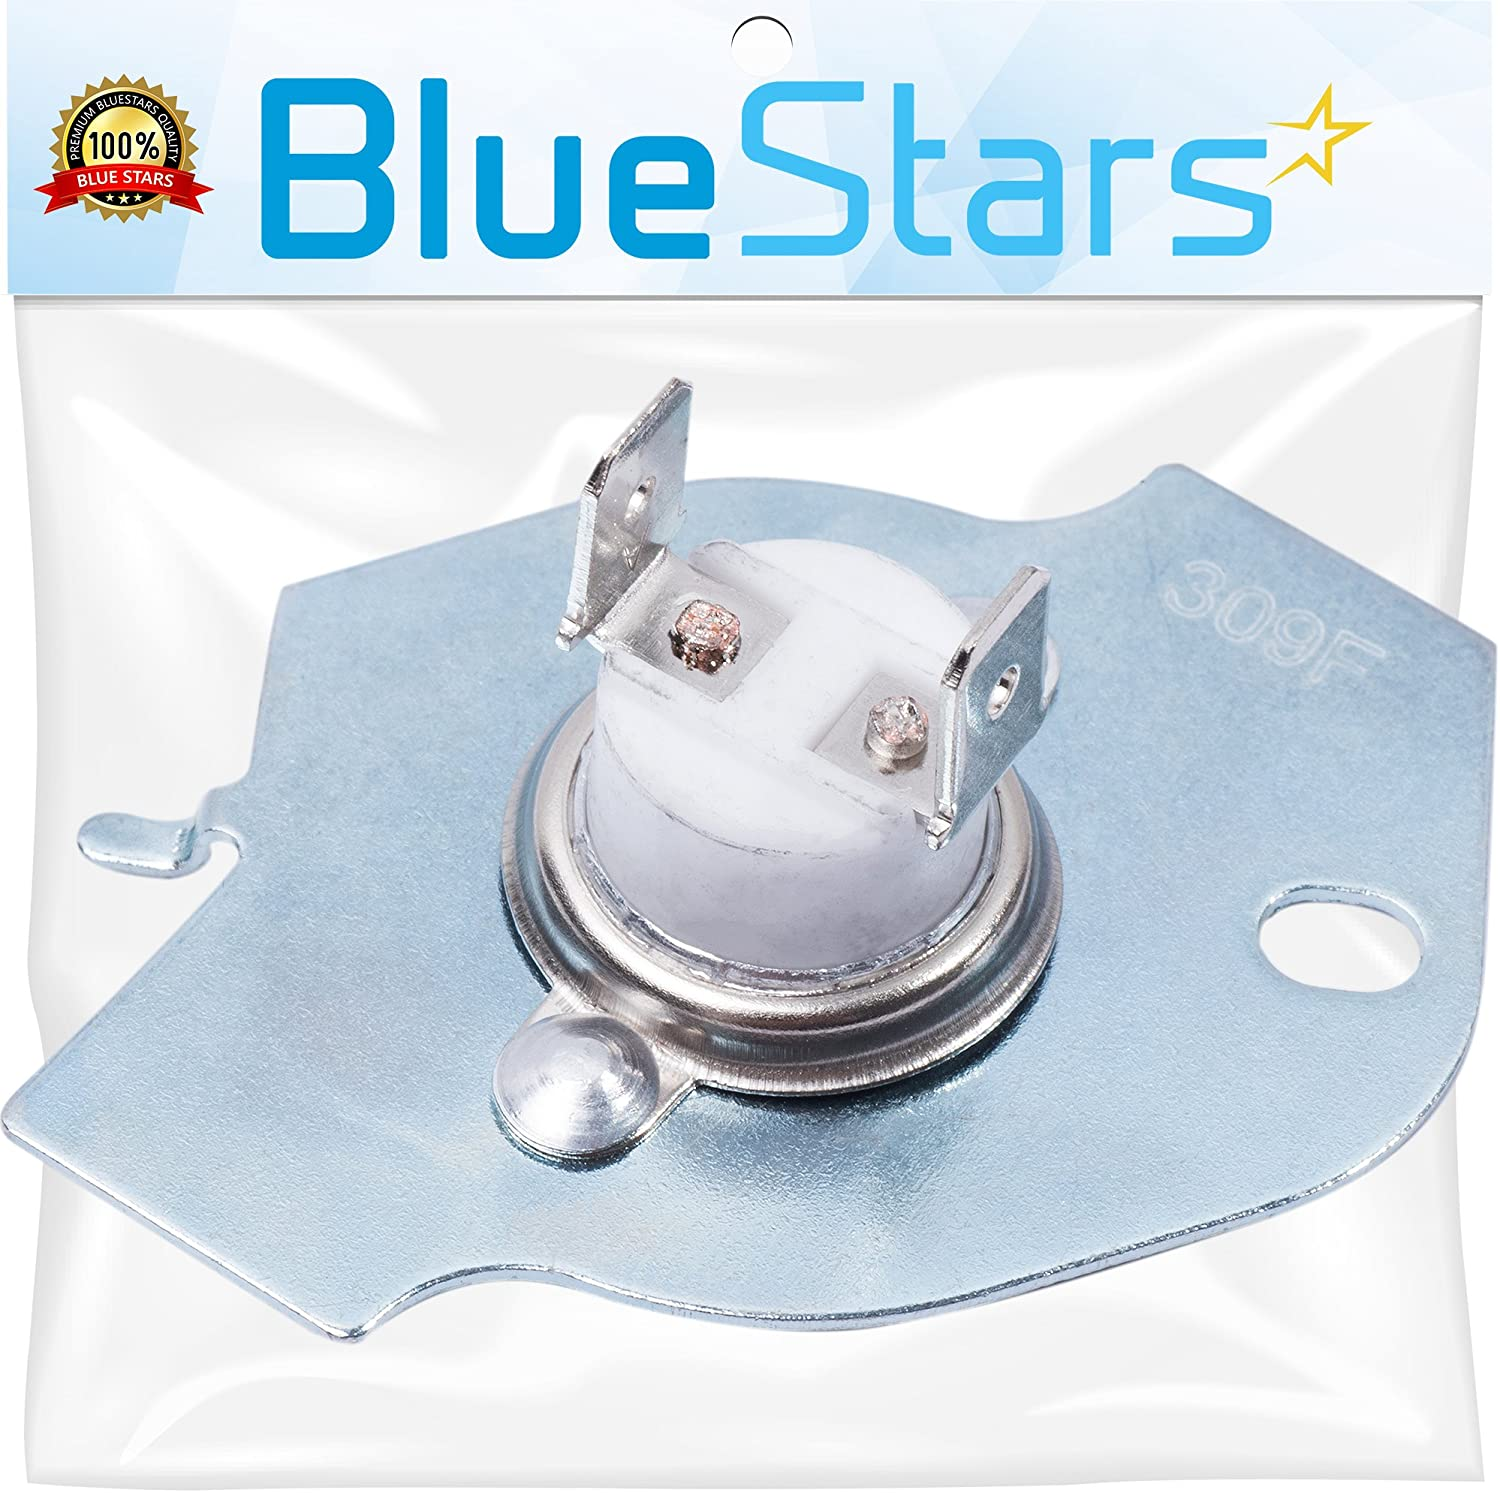 3977393 Dryer Thermal Fuse Replacement by Blue Stars – Exact Fit For Whirlpool & Kenmore Dryers - Replaces AP3094244 3399848 AH334299 279816VP